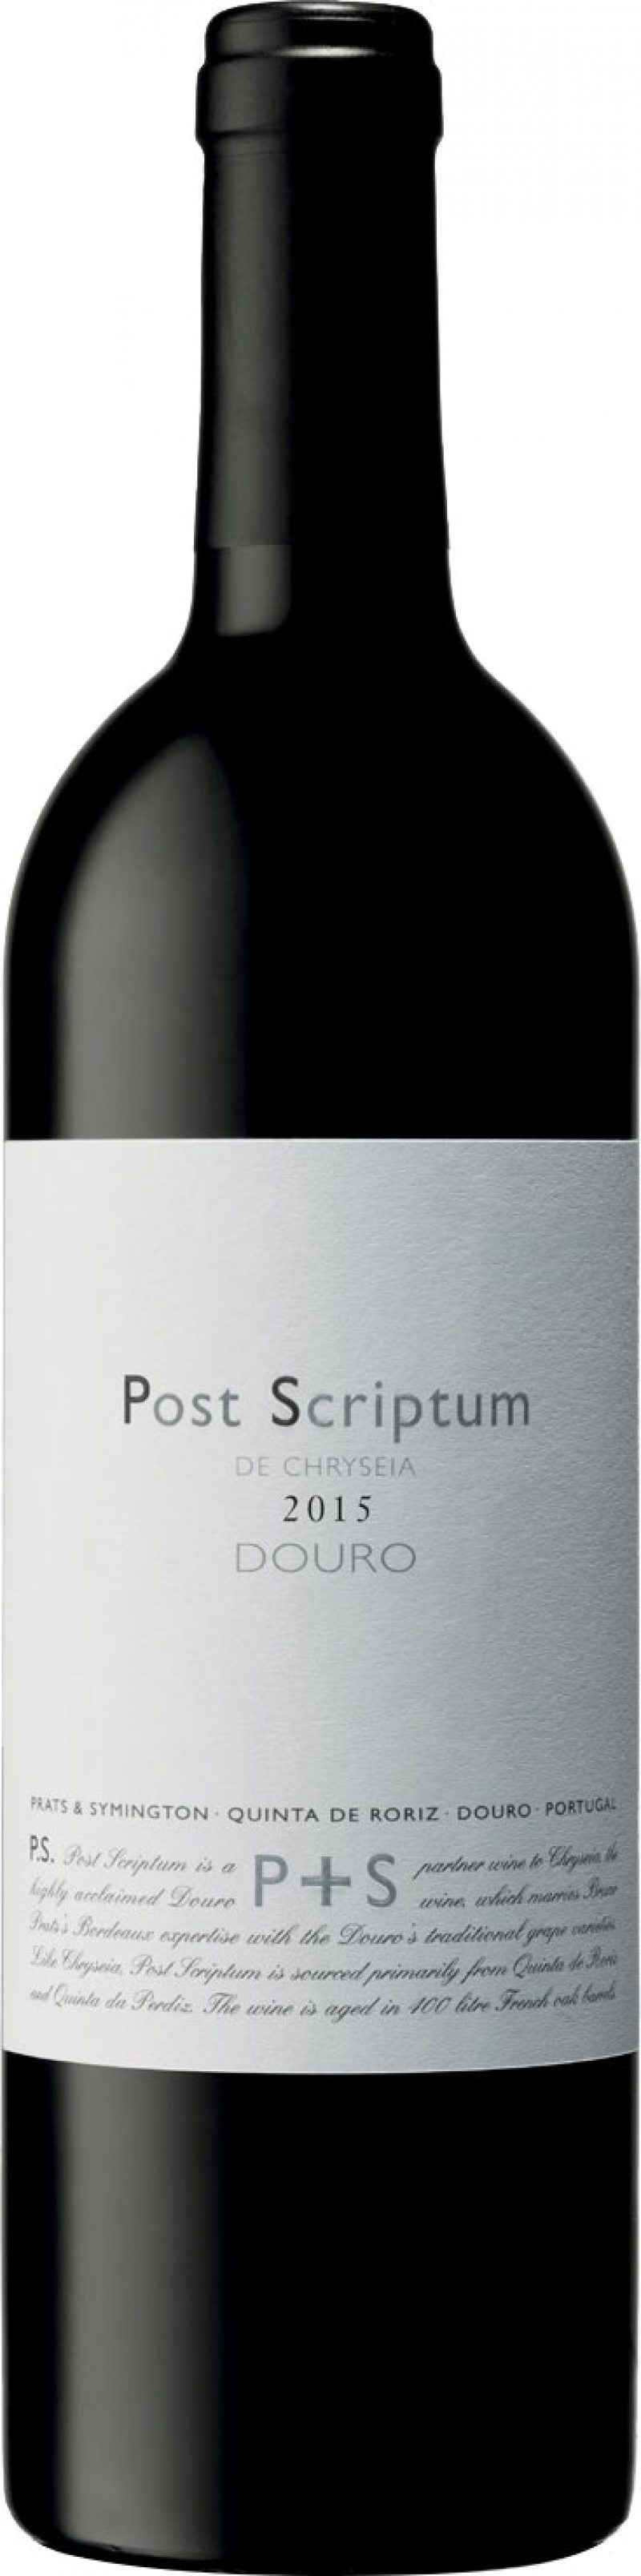 Prats Symington - Post Scriptum 2017 (75cl Bottle)